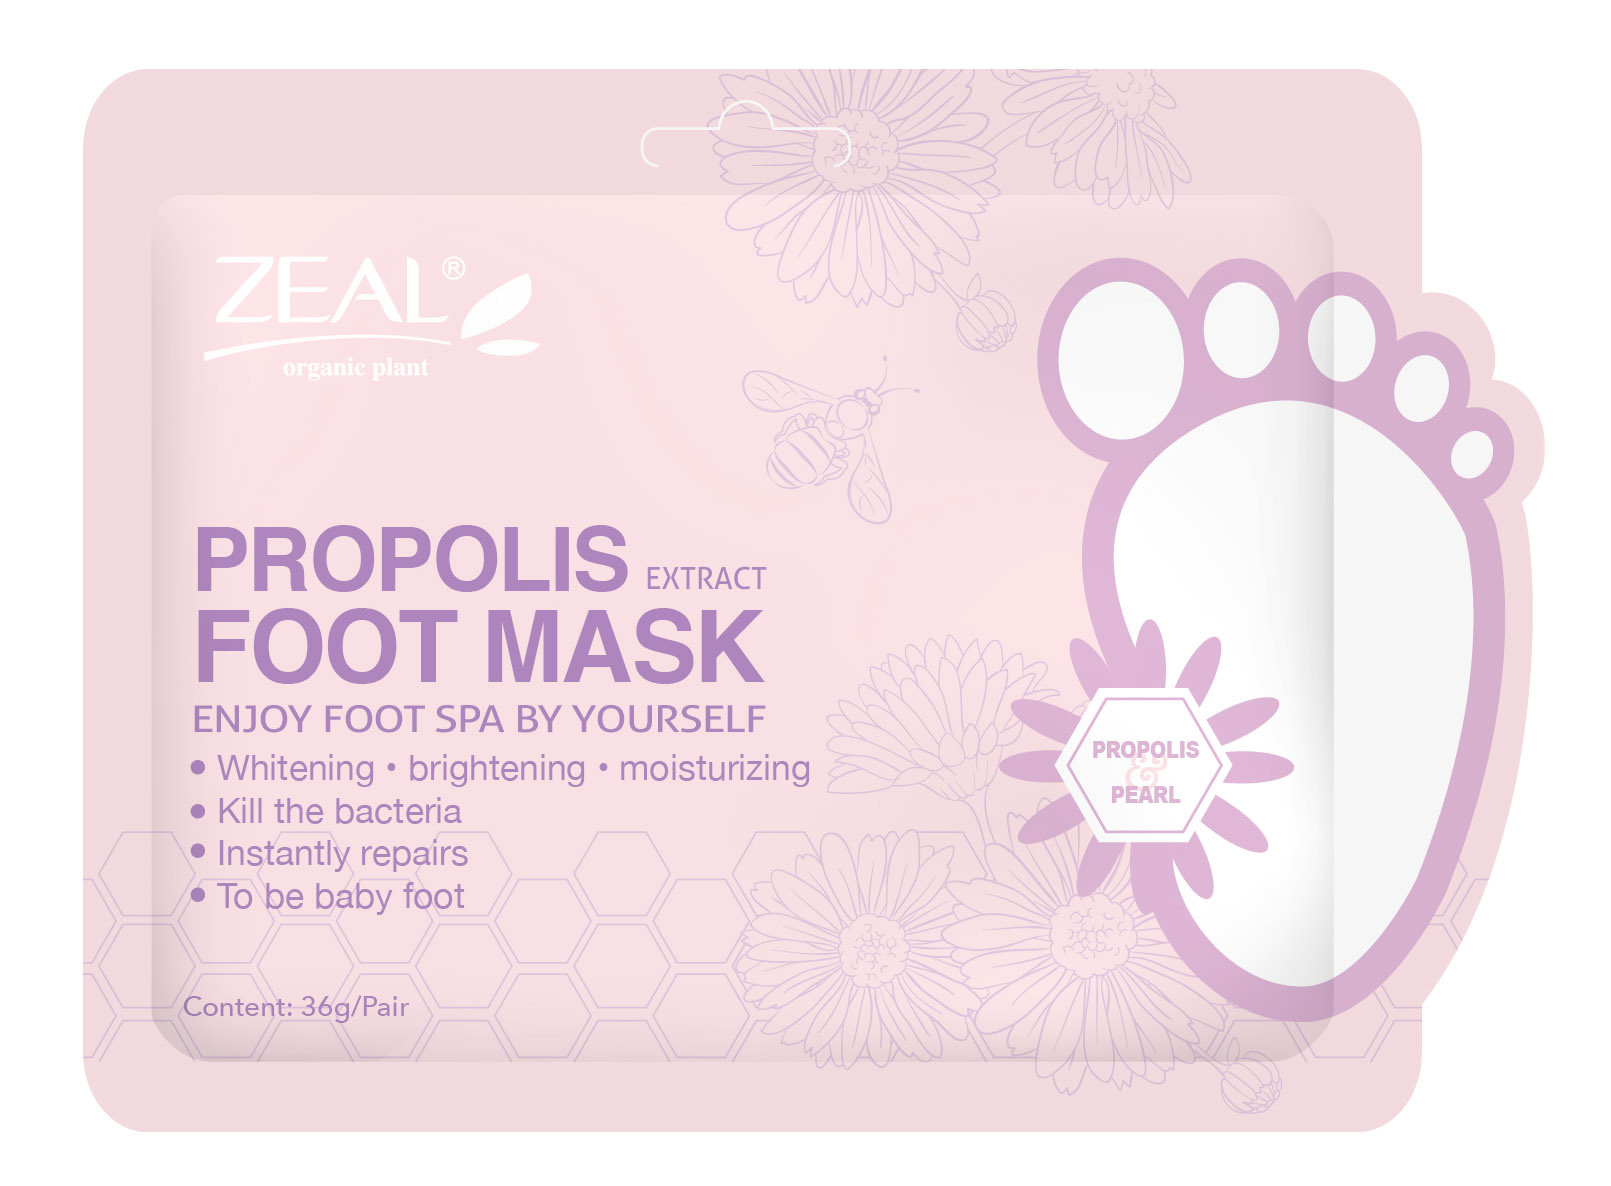 Zeal Propolis & Pearl Whitening & Brighten Foot Mask Cosmetic